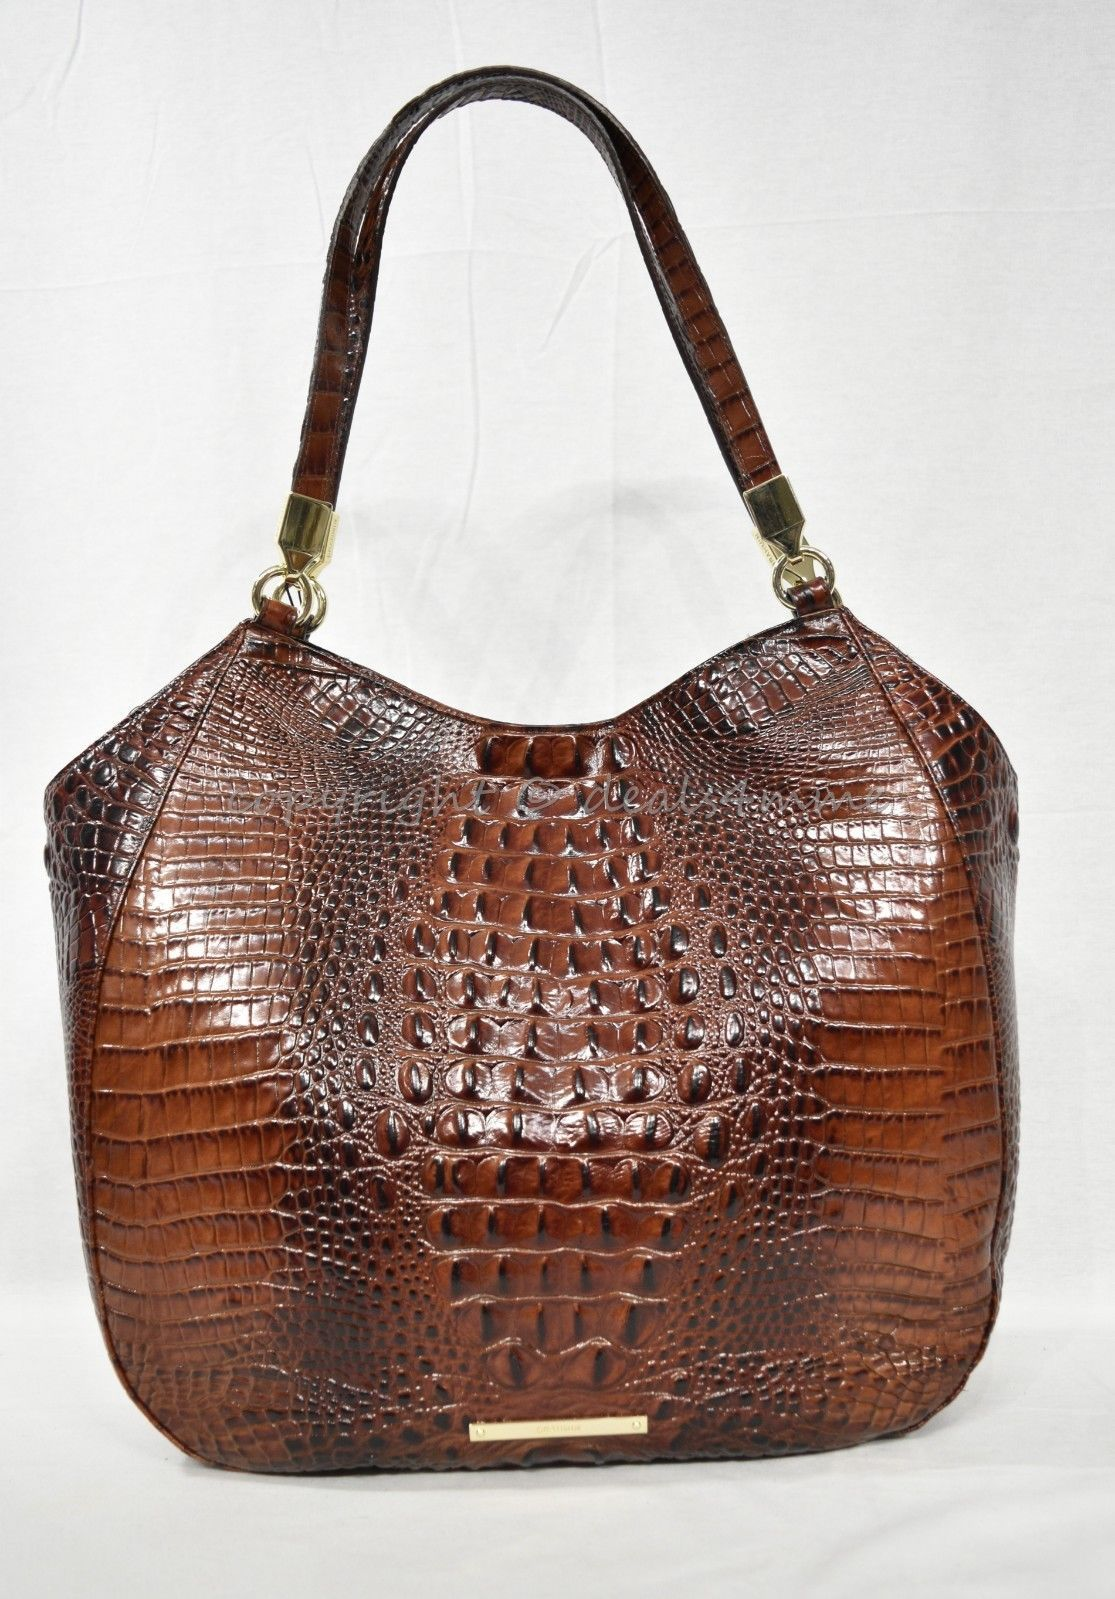 NWT Brahmin Thelma Tote / Shoulder Bag/Tote in Pecan Melbourne Embossed Leather image 2